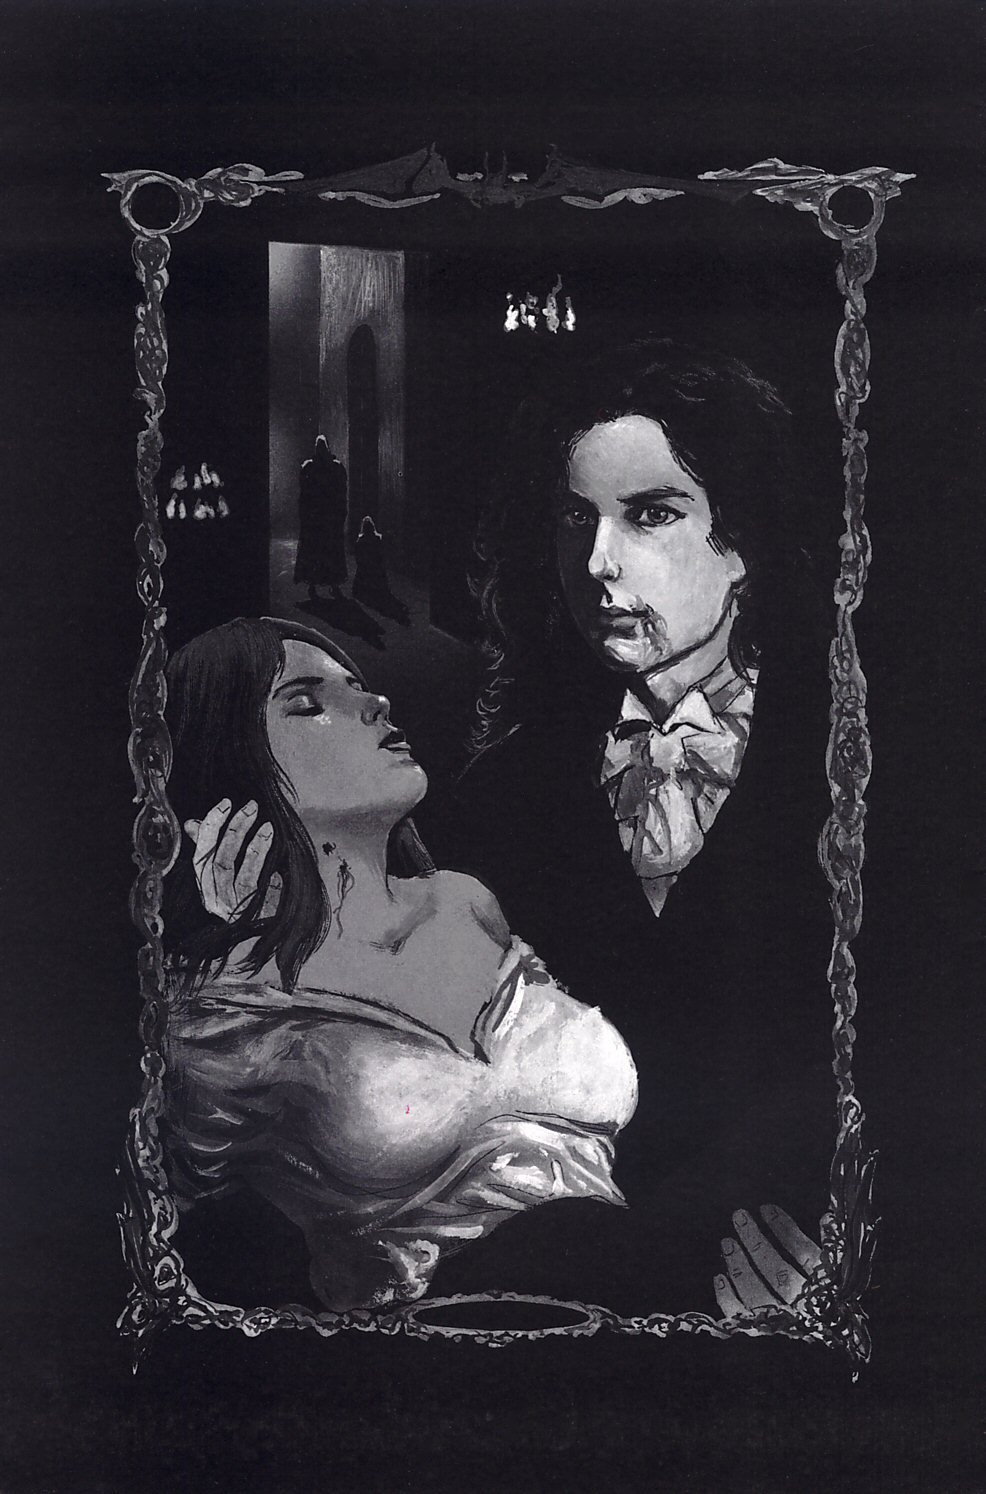 Read online Anne Rice's Interview with the Vampire comic -  Issue #9 - 2